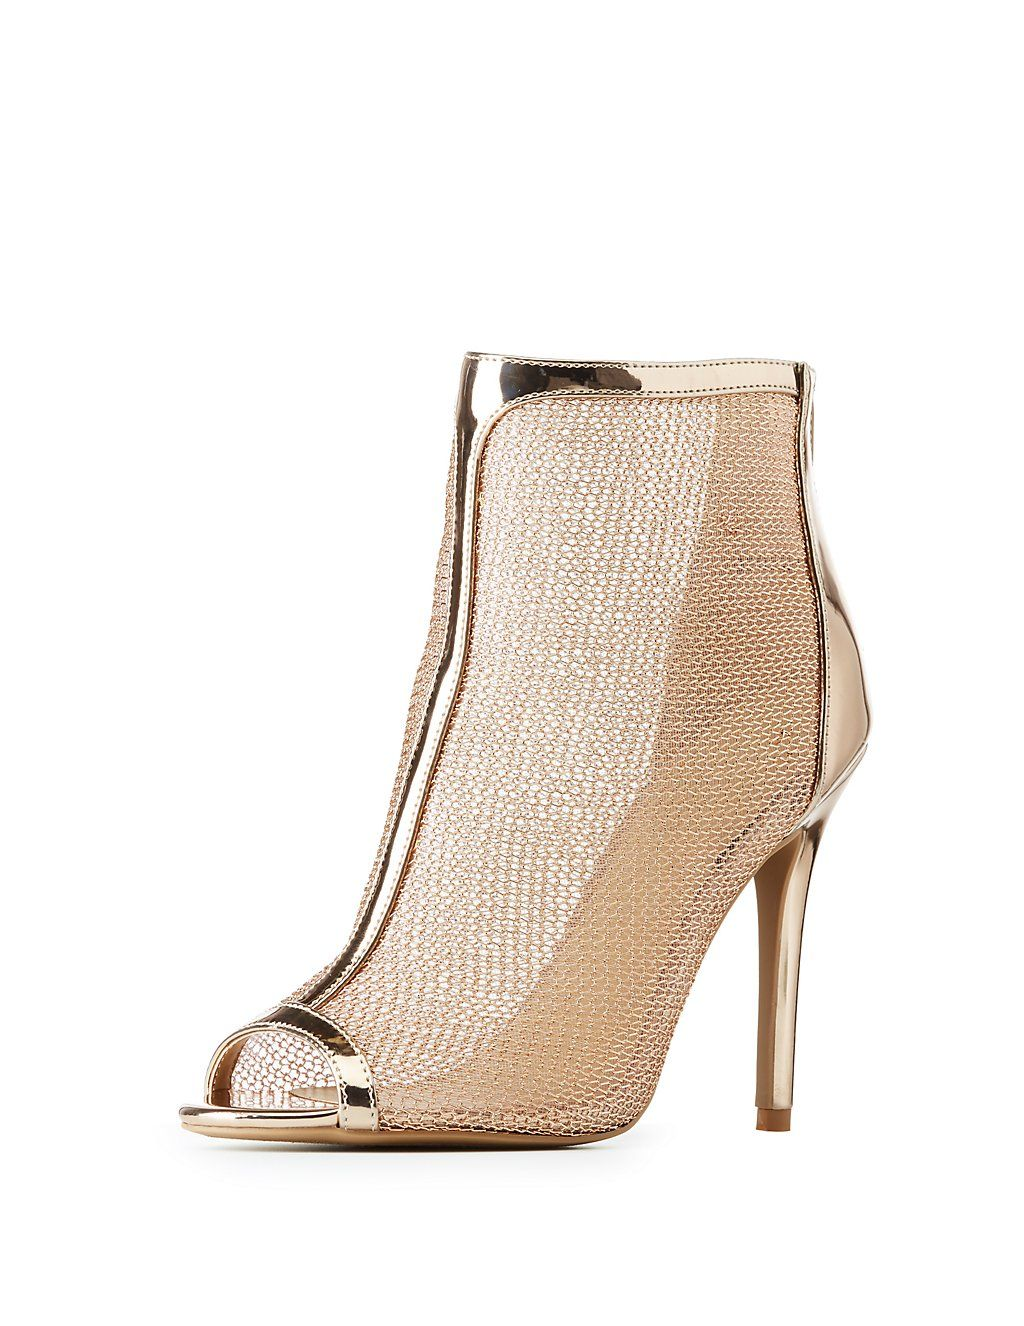 040708e072d3f3 Mesh creates the coolest paneling to these metallic patent faux leather  booties